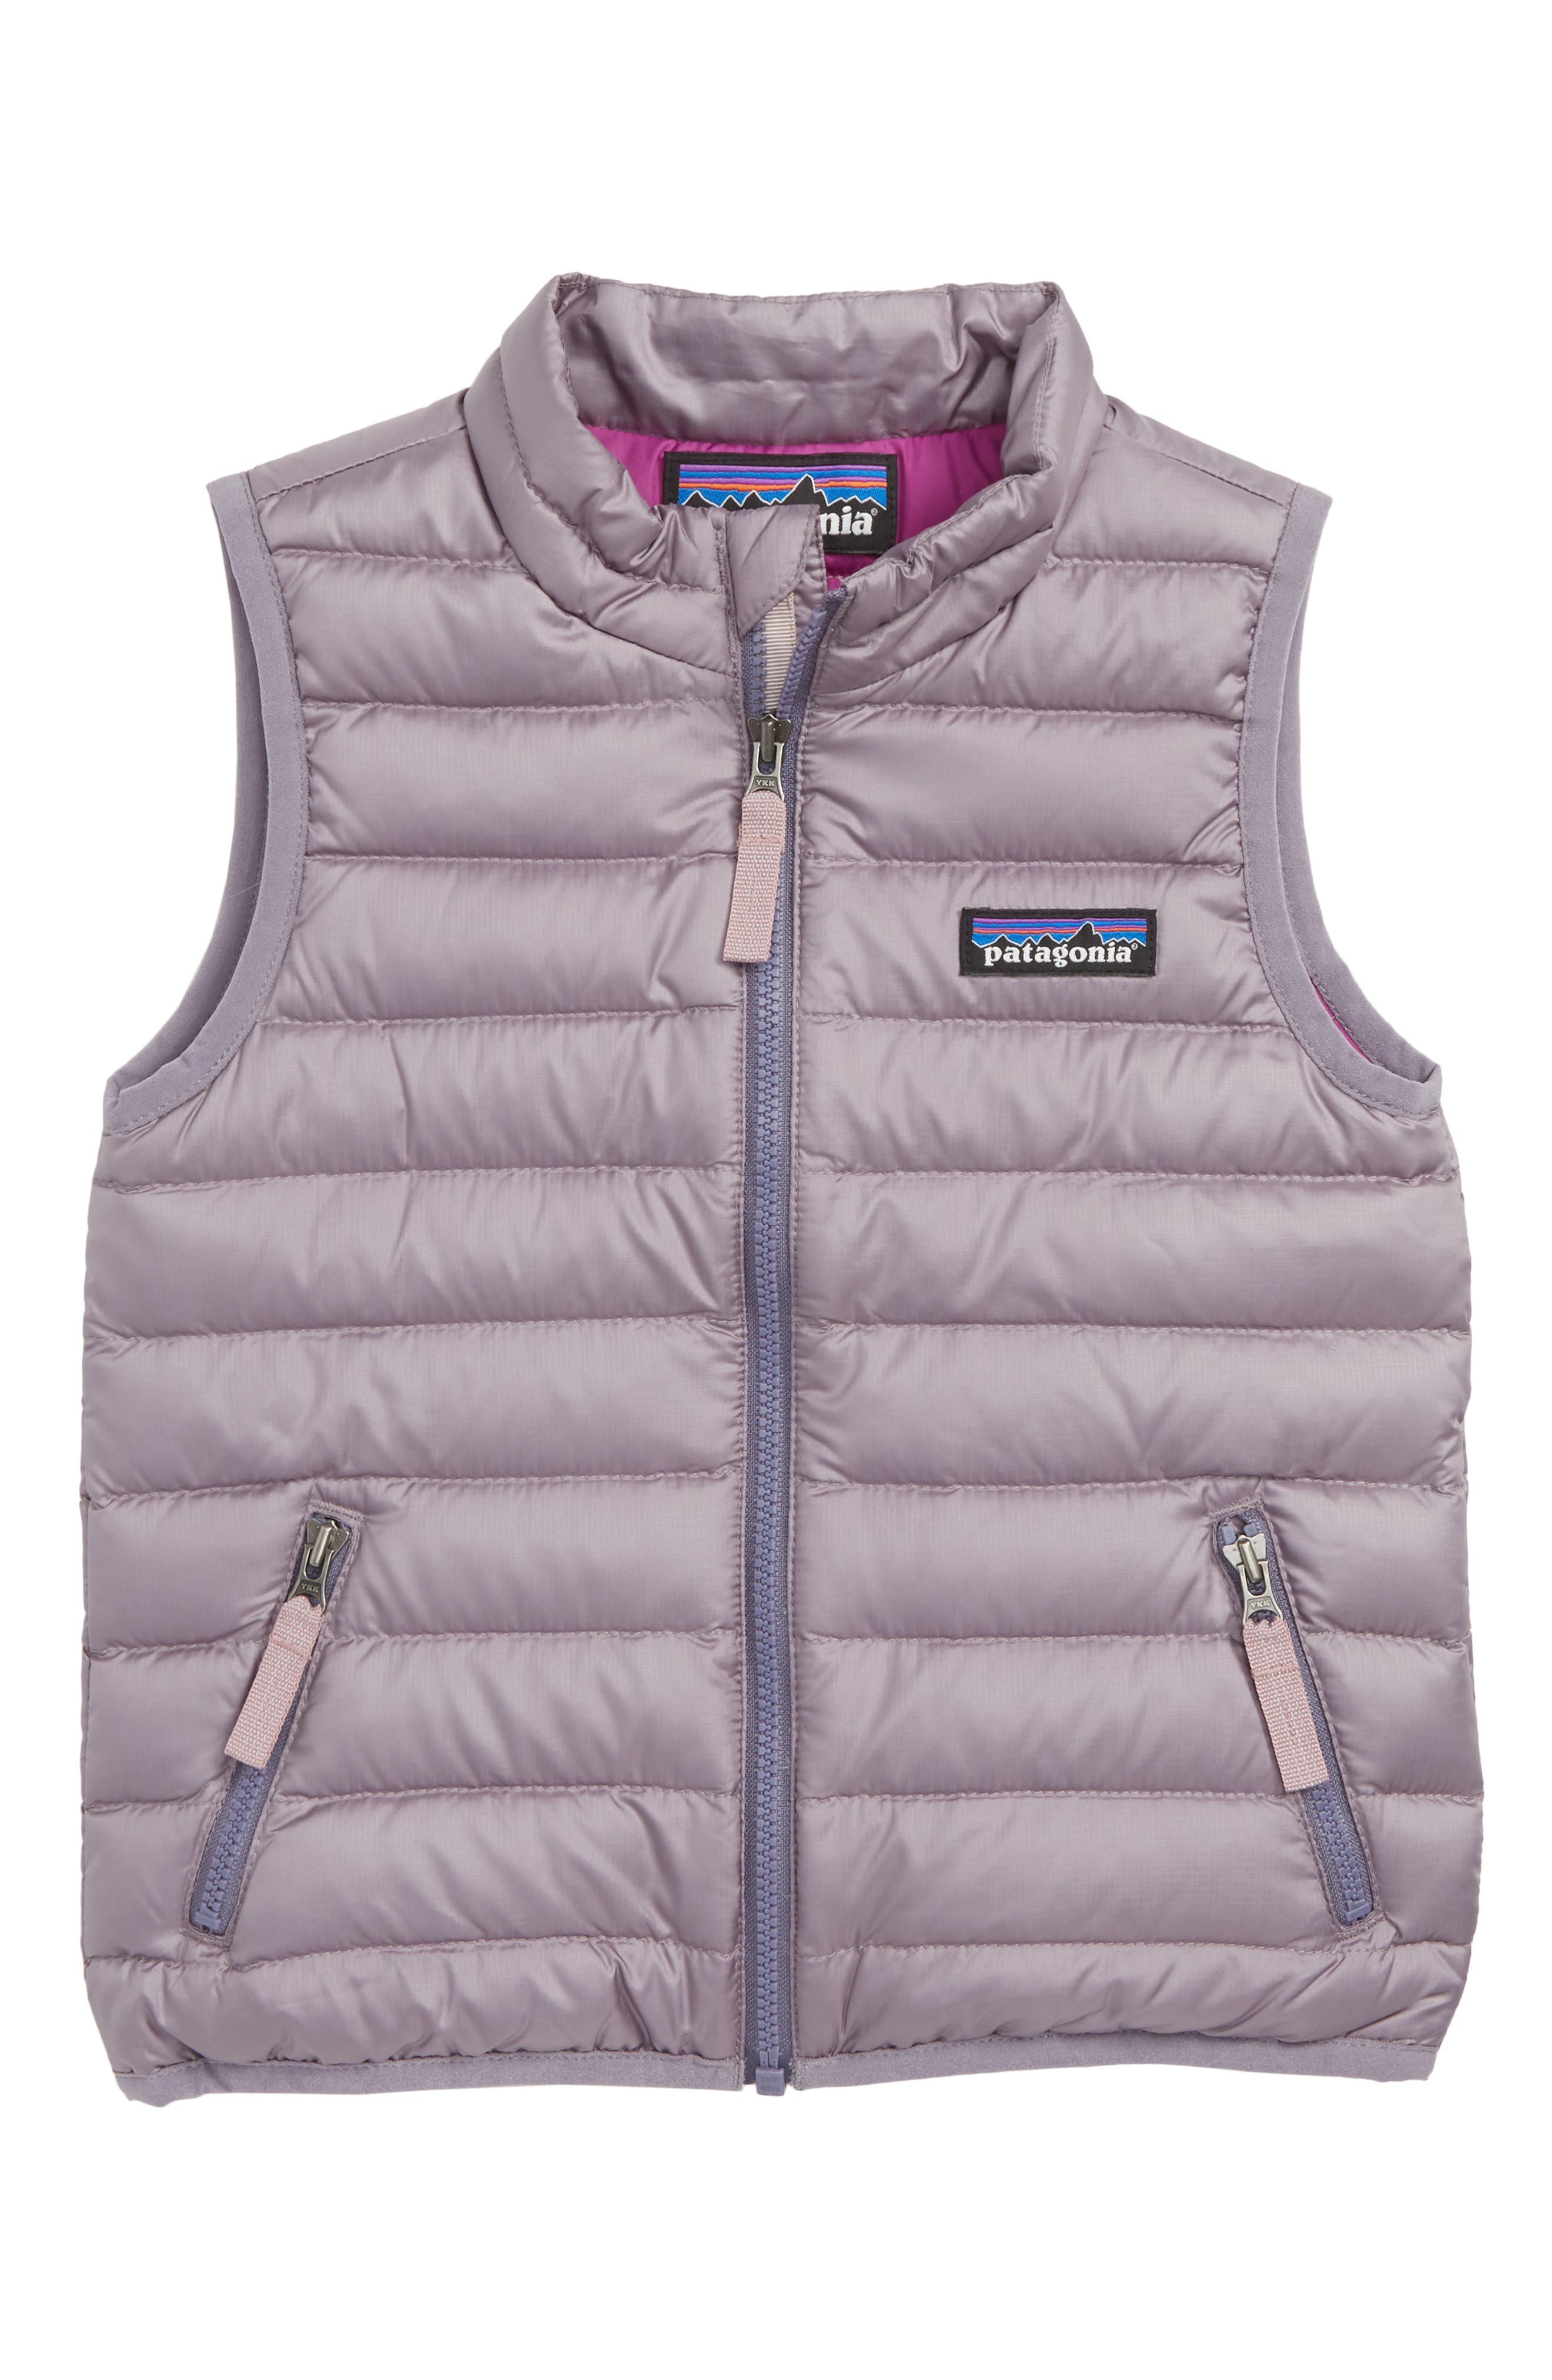 600-Fill Down Sweater Vest,                         Main,                         color, SMOKEY VIOLET